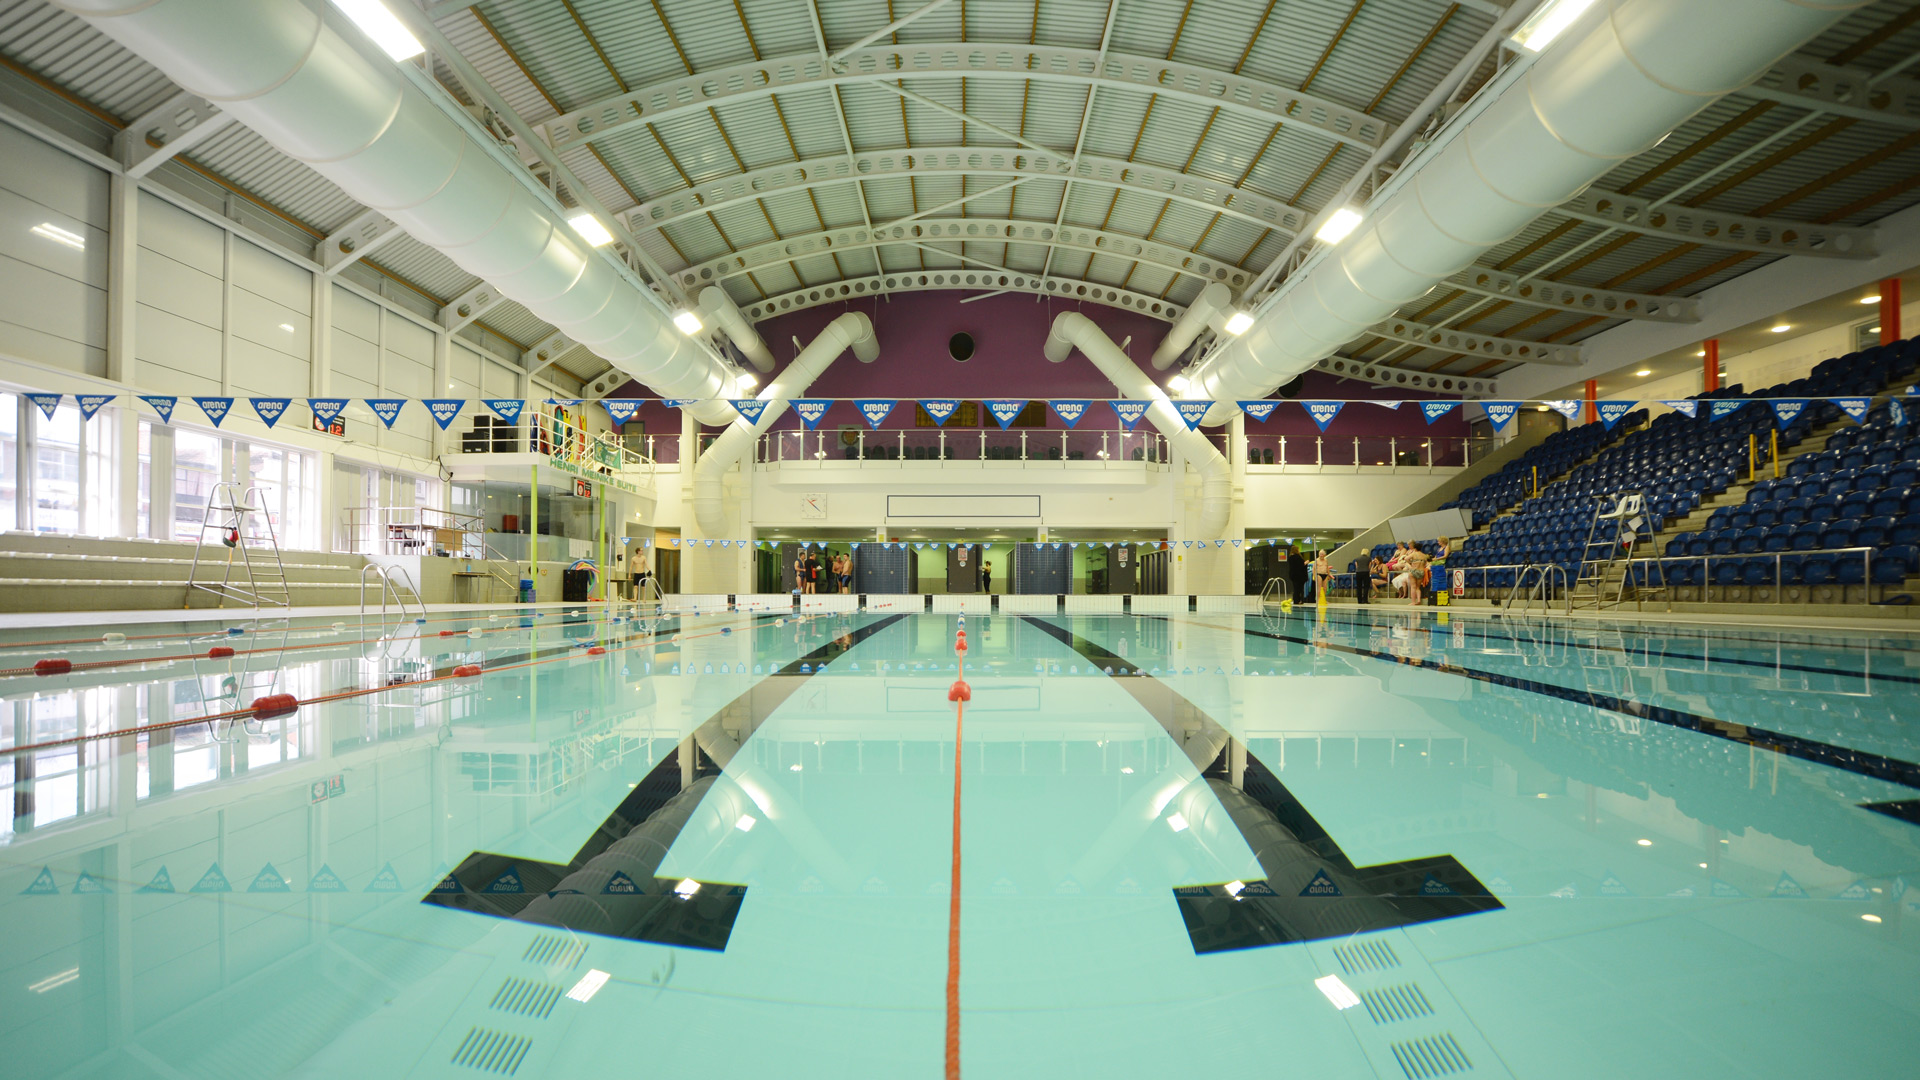 Swimming pools gl1 gloucester aspire trust - Swimming pool swimming pool swimming pool ...